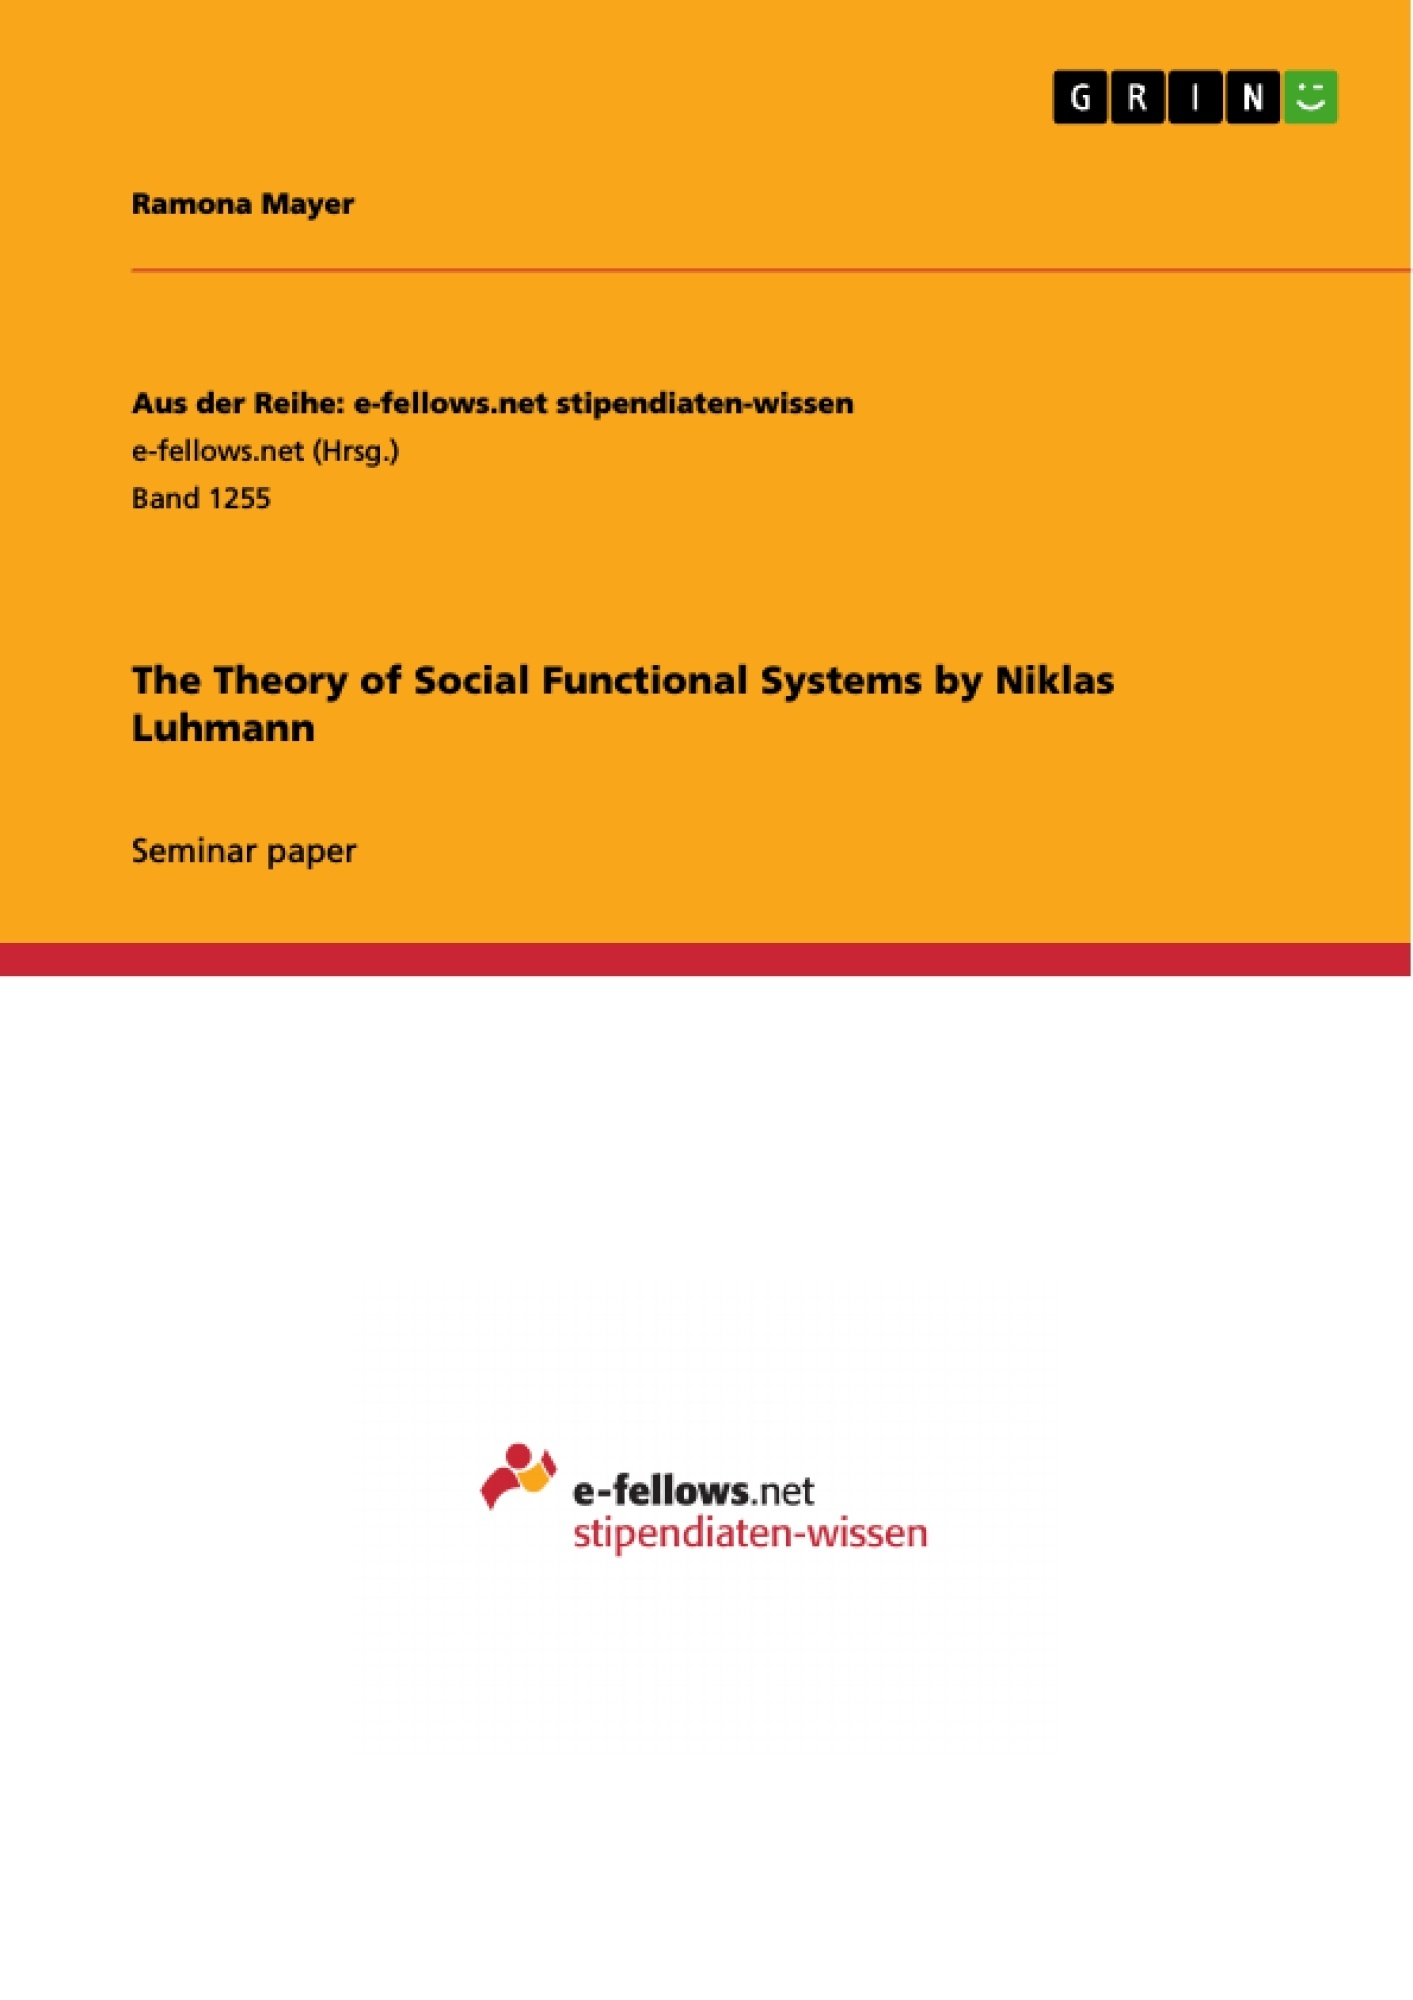 Title: The Theory of Social Functional Systems by Niklas Luhmann